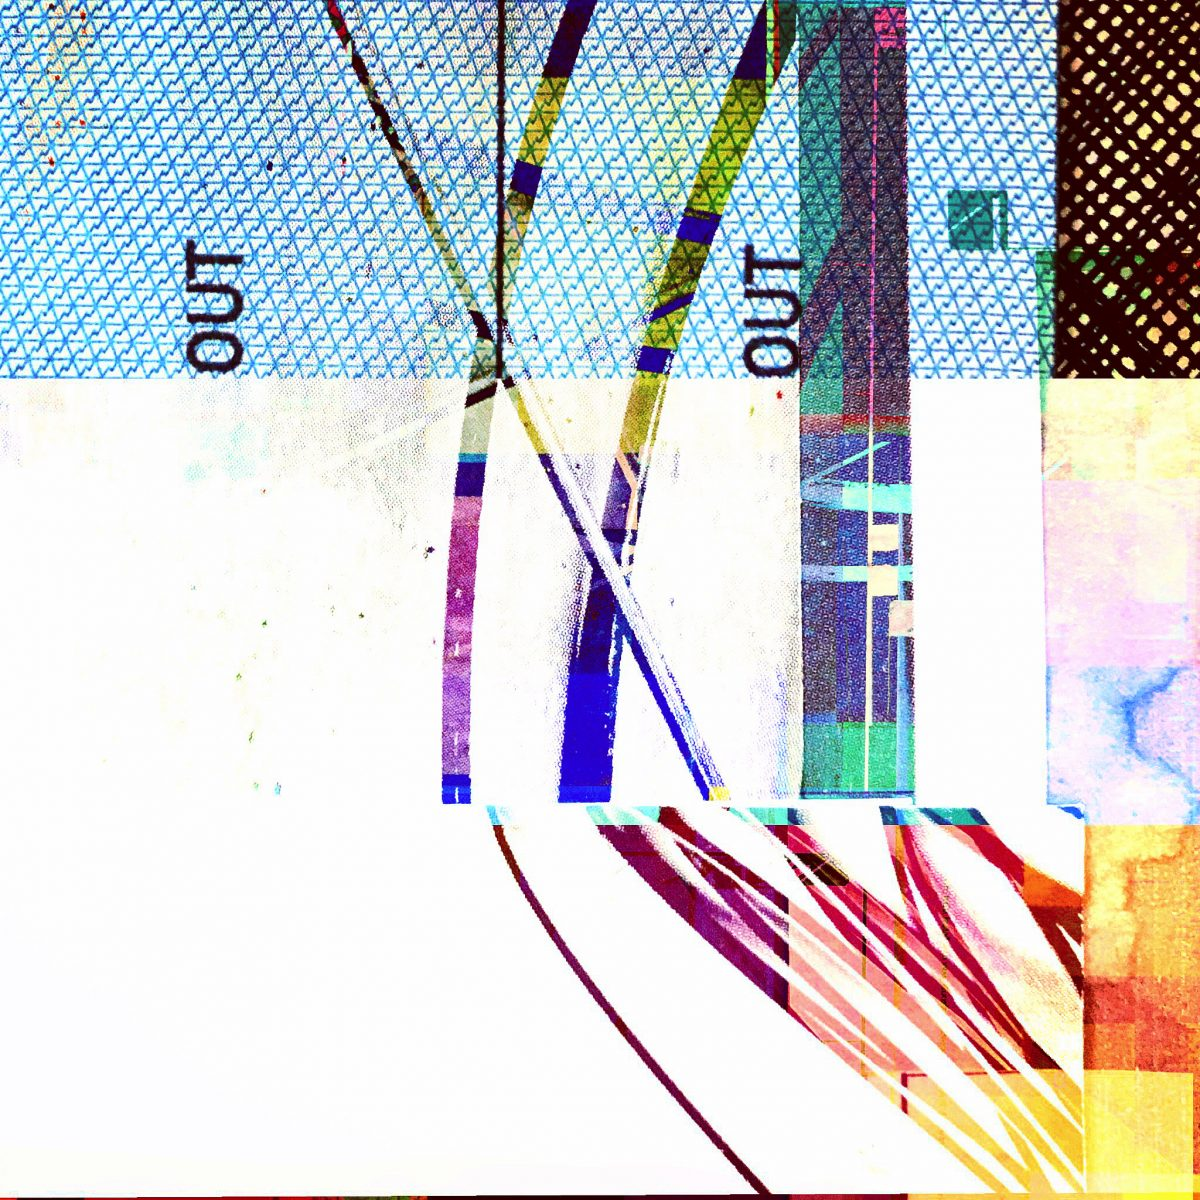 Crossed Wires. Phone collages for Happy Half Hour #335.